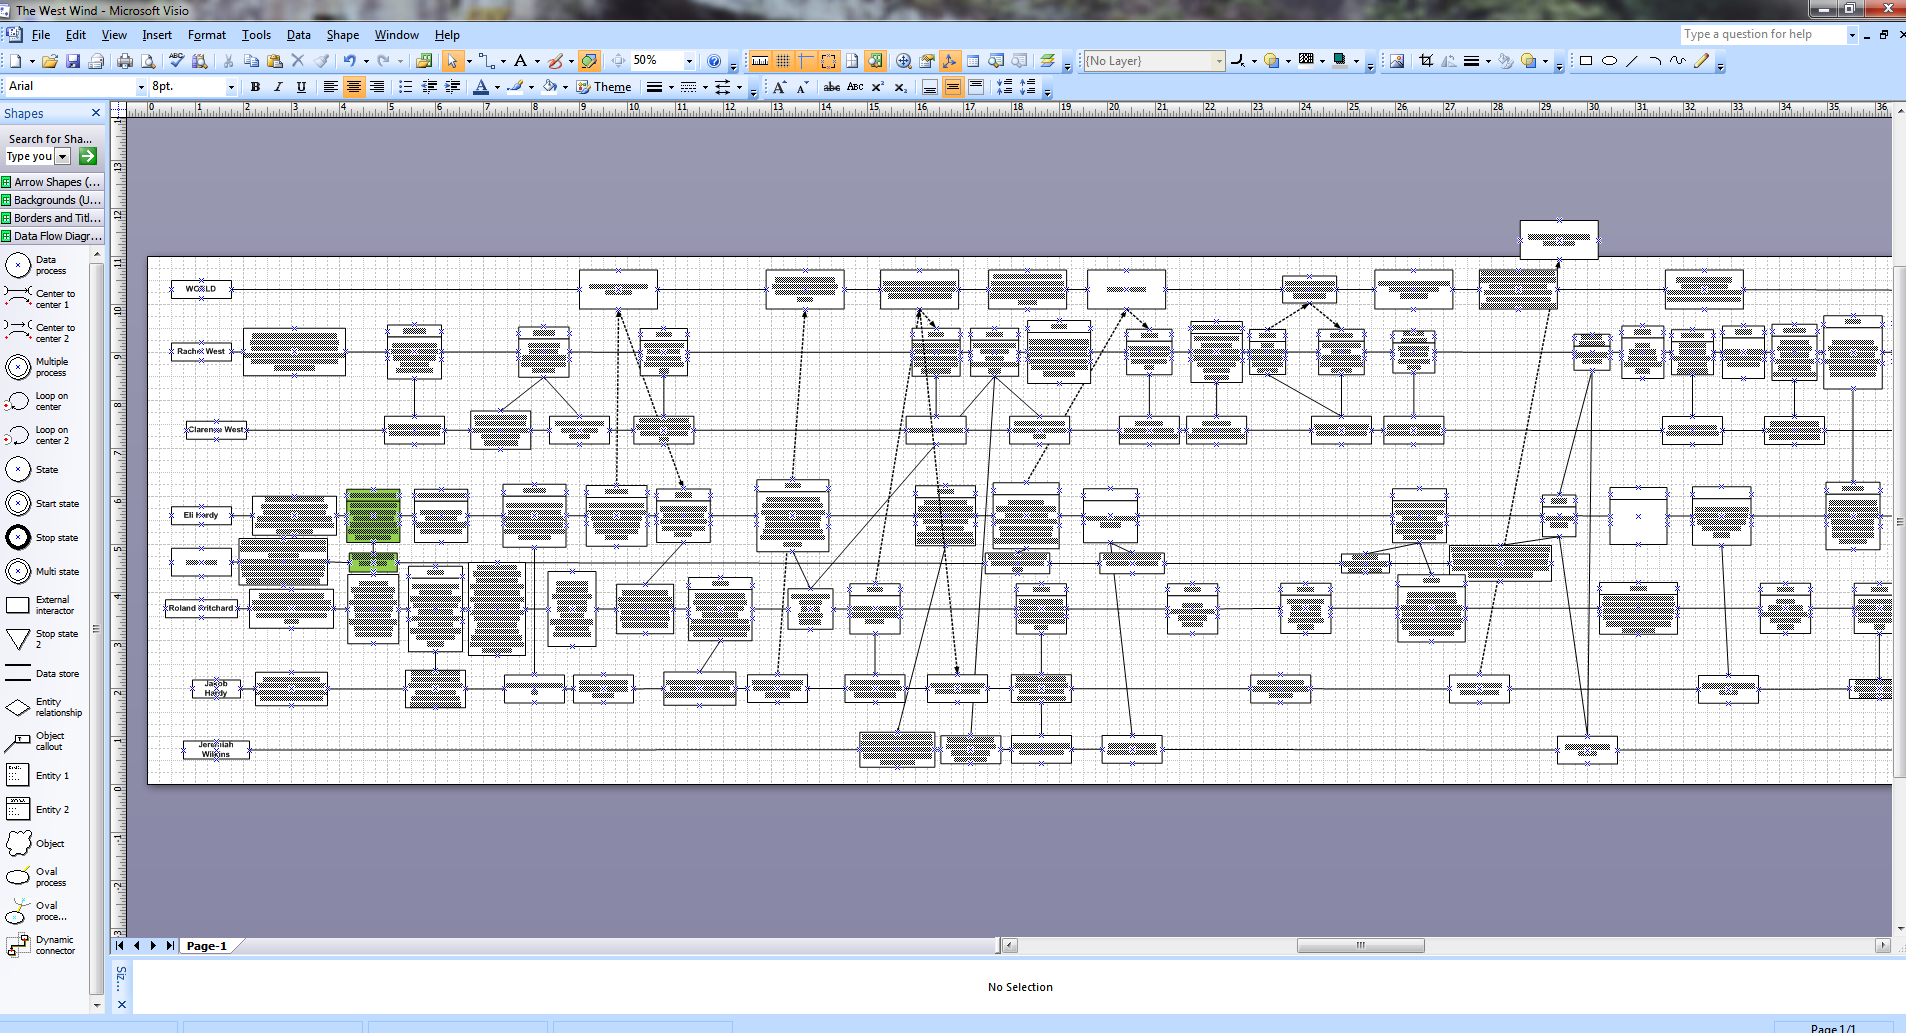 visio project timeline template - revision d w beyer